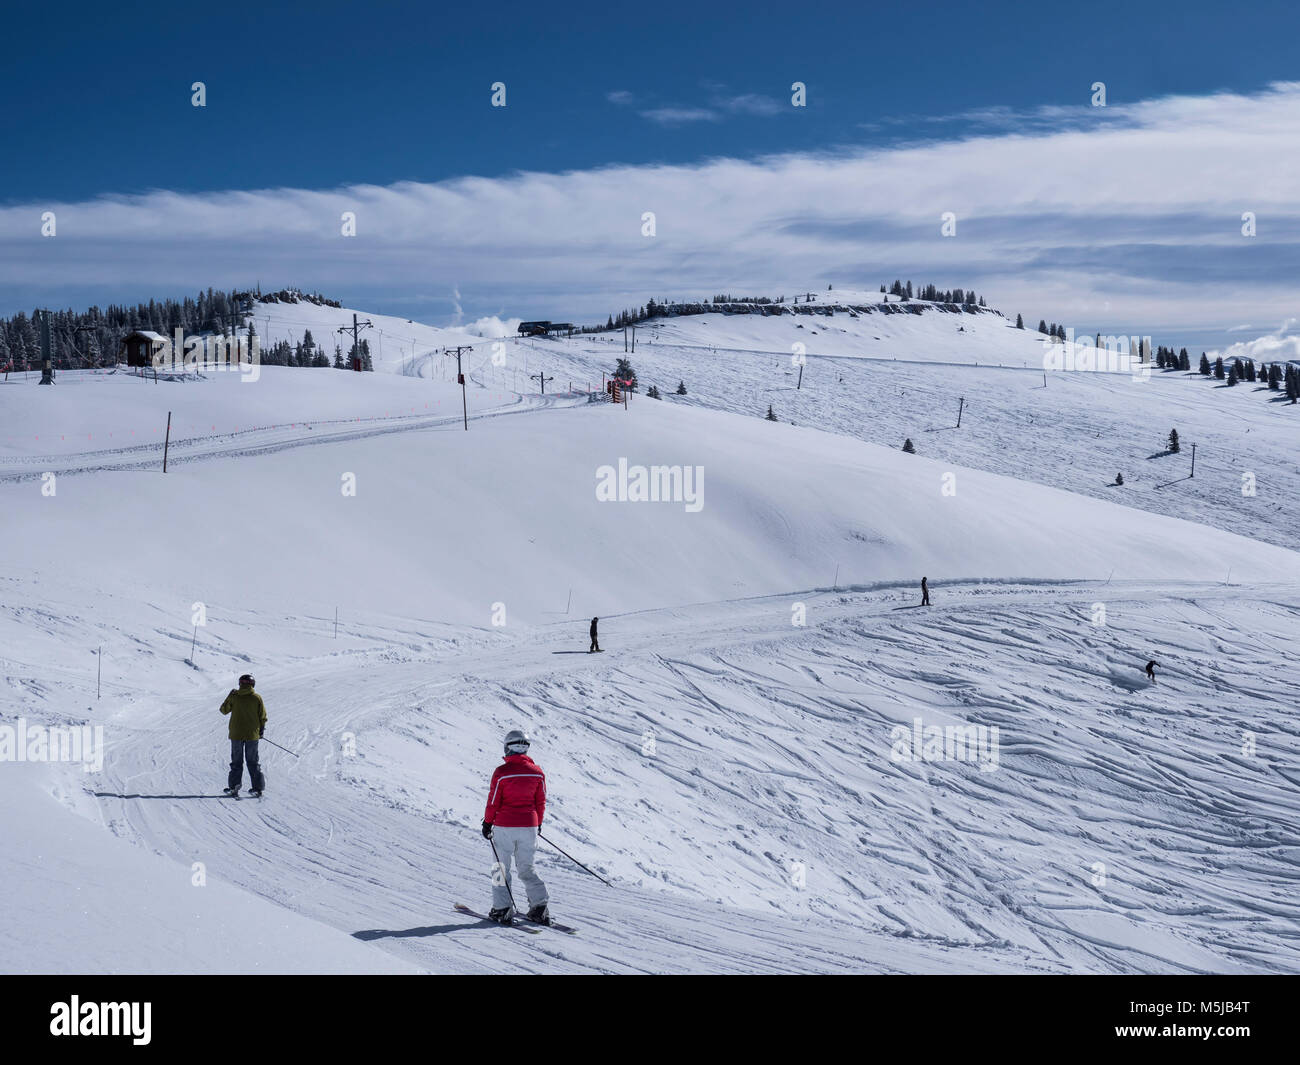 Start of the Timberline Catwalk trail, winter, Vail Ski Resort, Vail, Colorado. - Stock Image